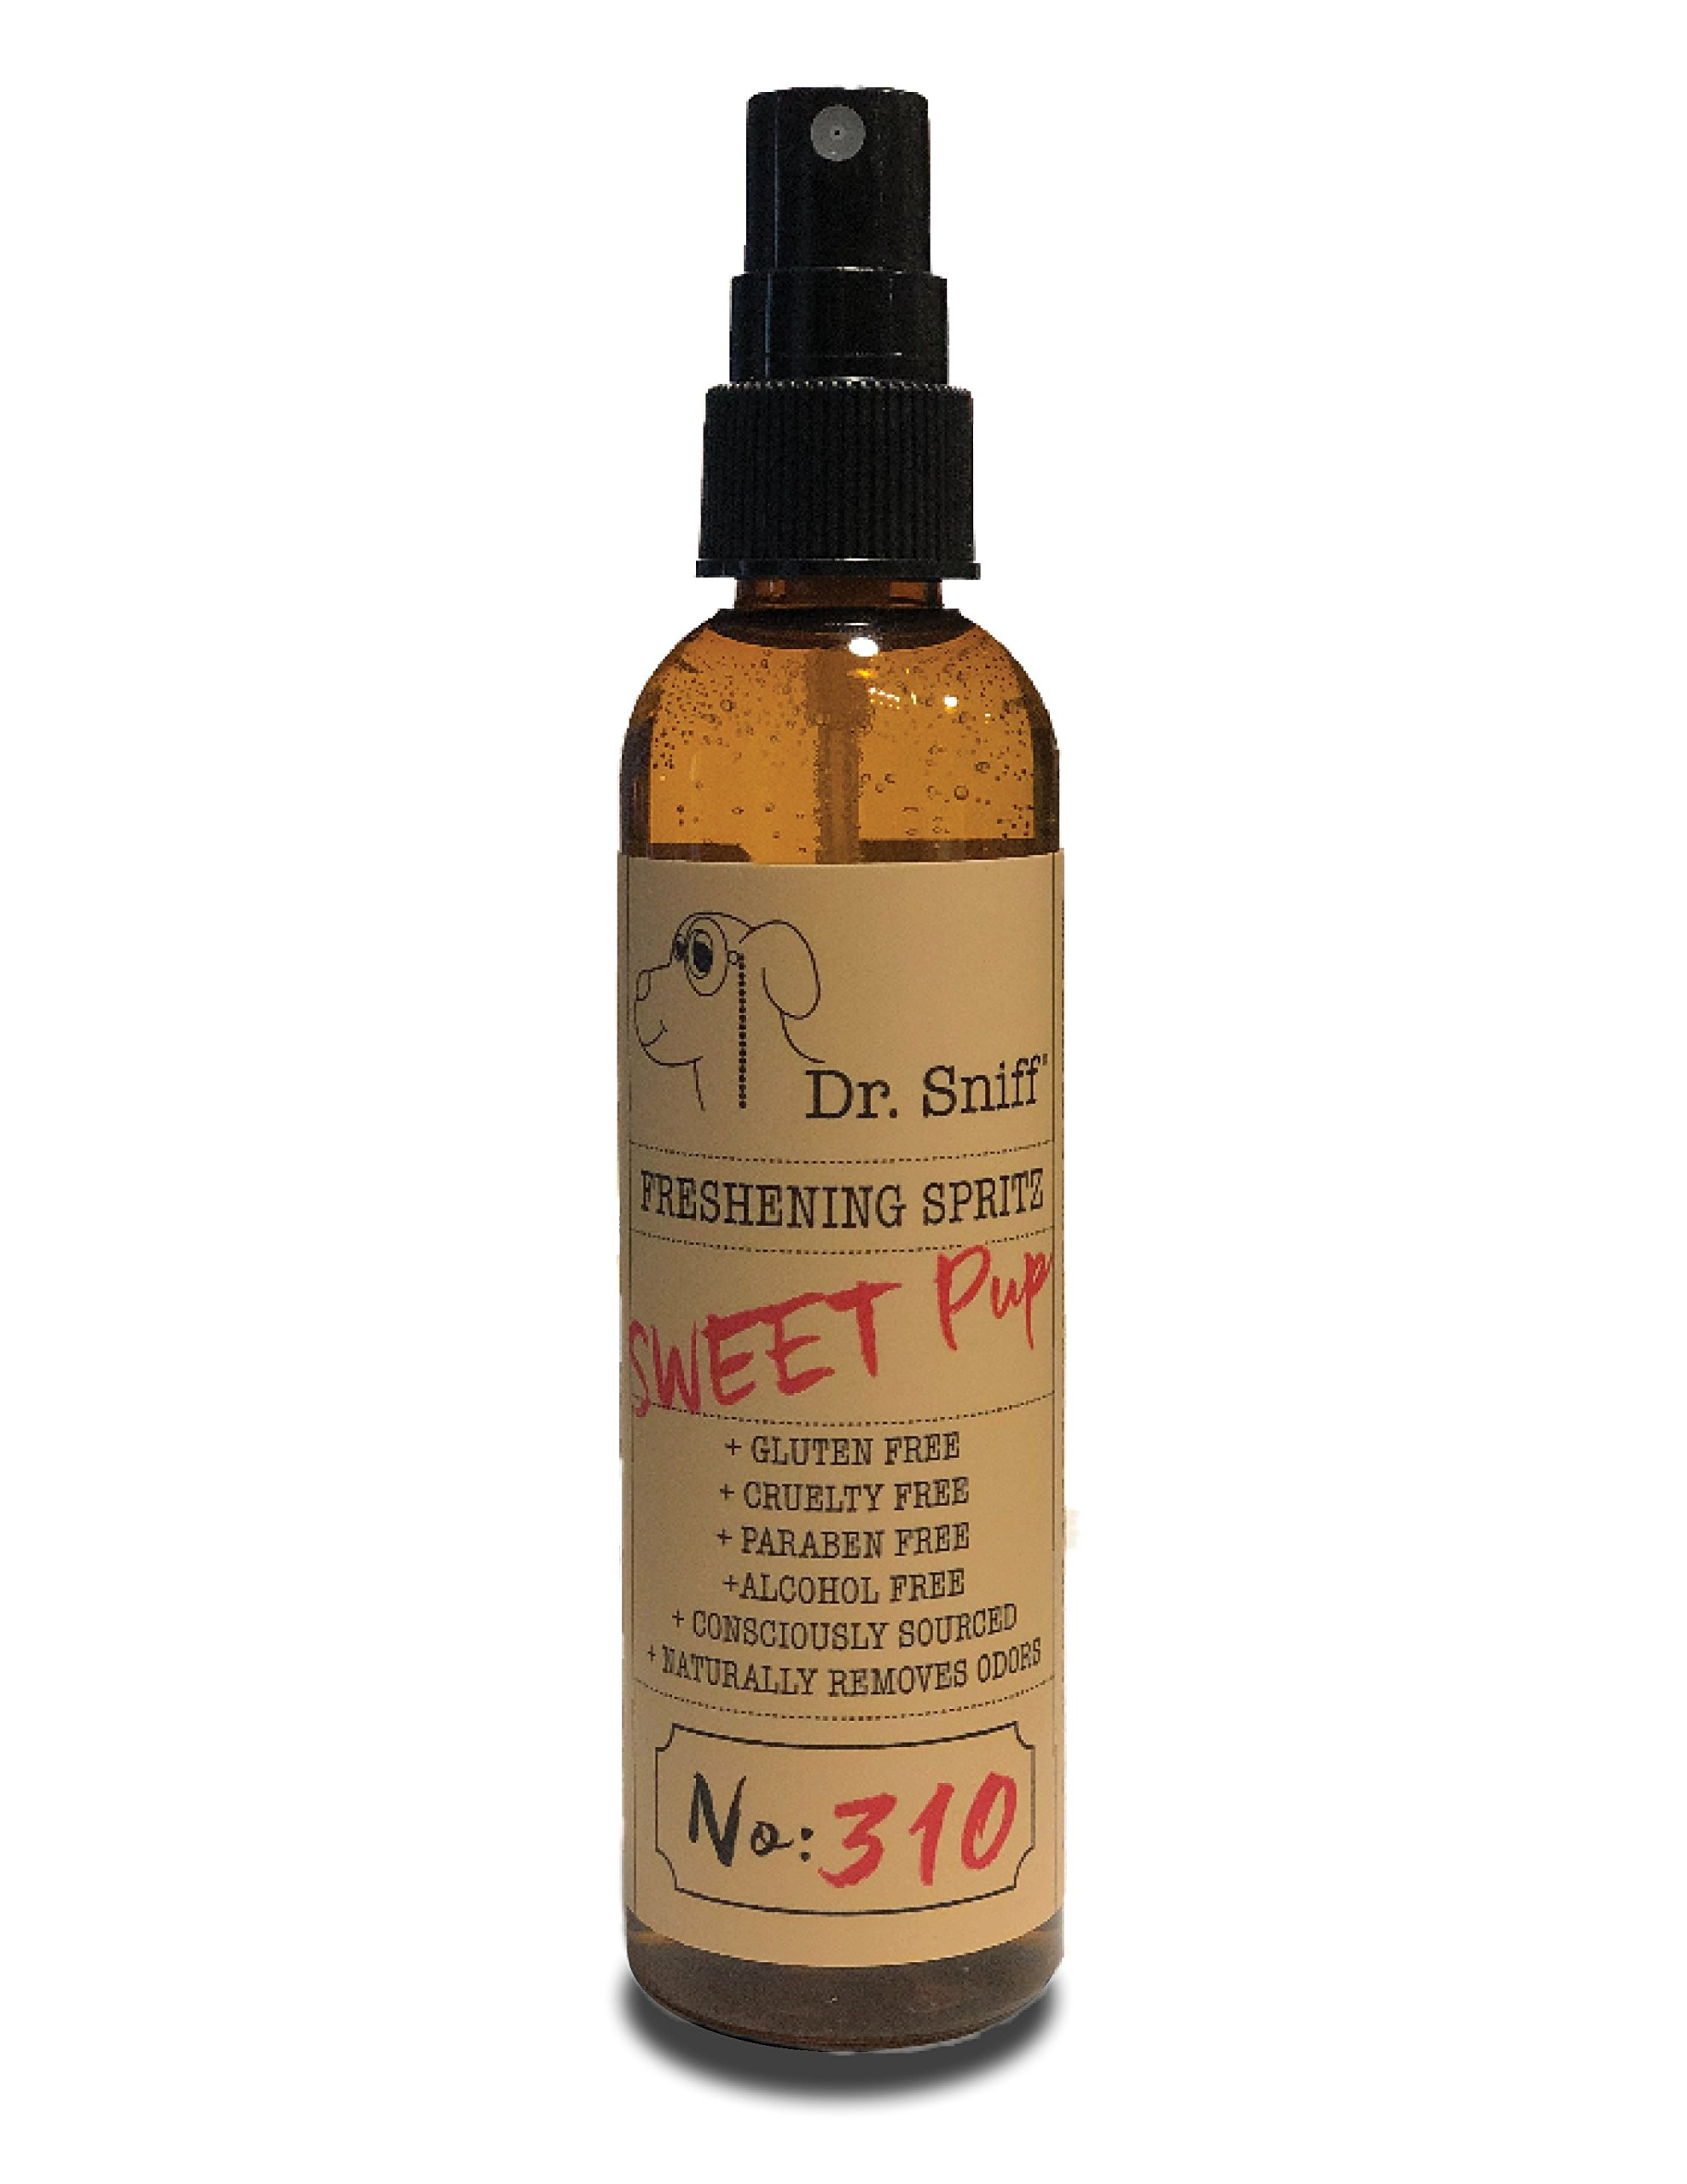 Dr. Sniff Freshening Spritz (Sweet Pup) | Deodorizing Spray | Made with Organic Aloe, Organic Agave and Argan Oil | Free of Alcohol, Parabens, Toxins, Sulfates and Gluten | Eliminates Odors | 4oz